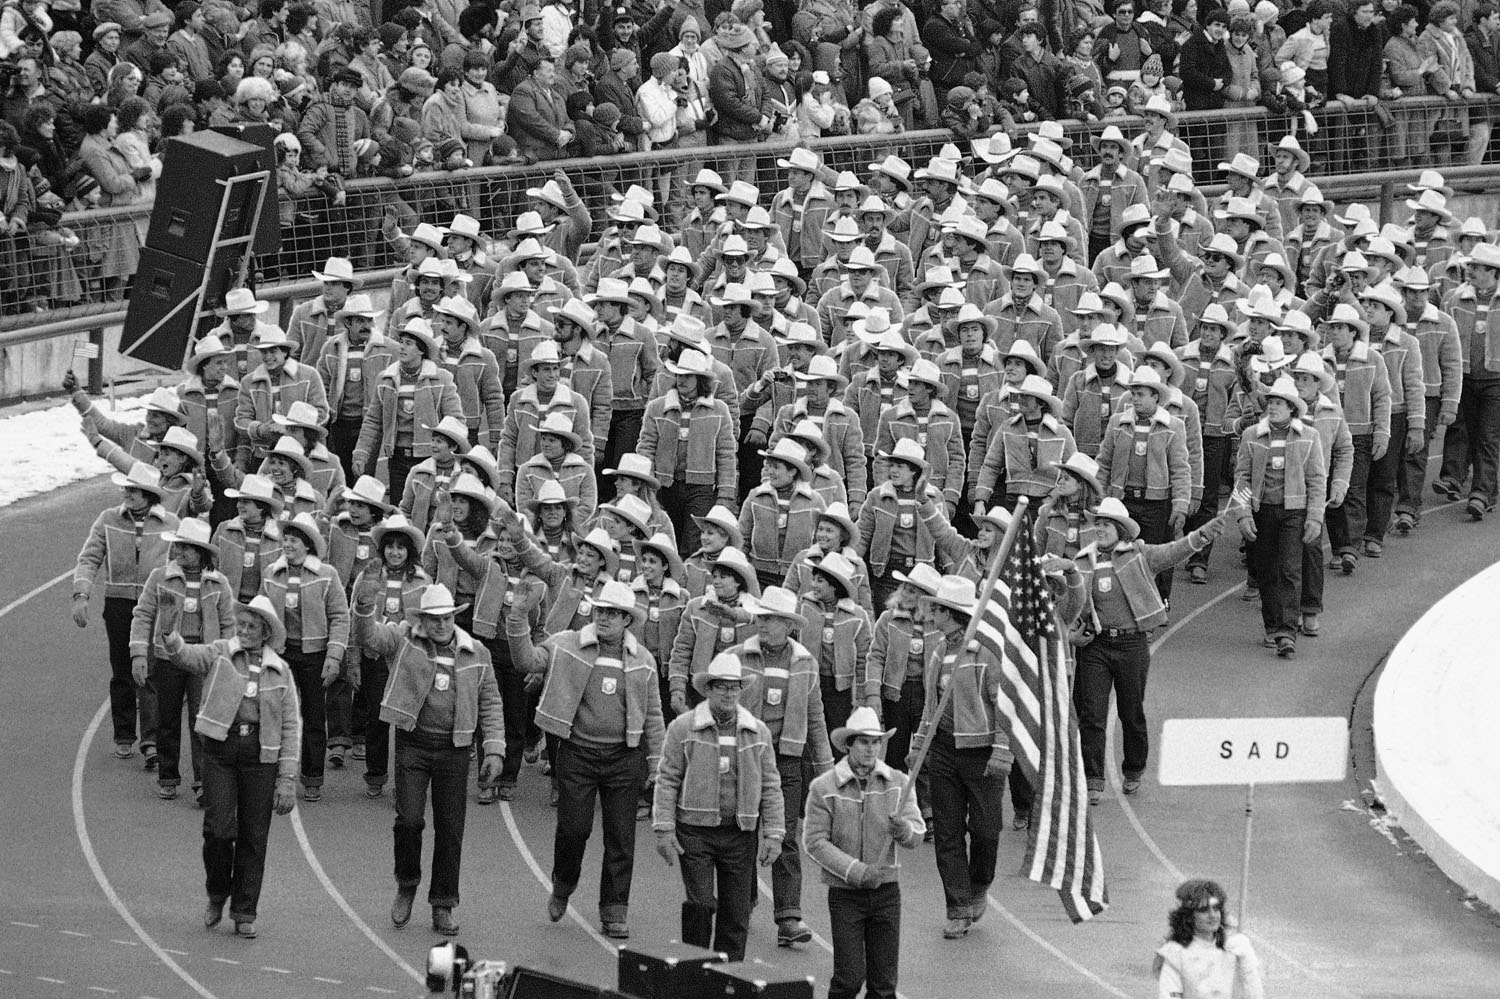 Luger Frank Masley carries the U.S. flag as he and his teammates march during the opening ceremonies of the 14th Winter Olympics in Sarajevo,Yugoslavia, Feb. 8, 1984.